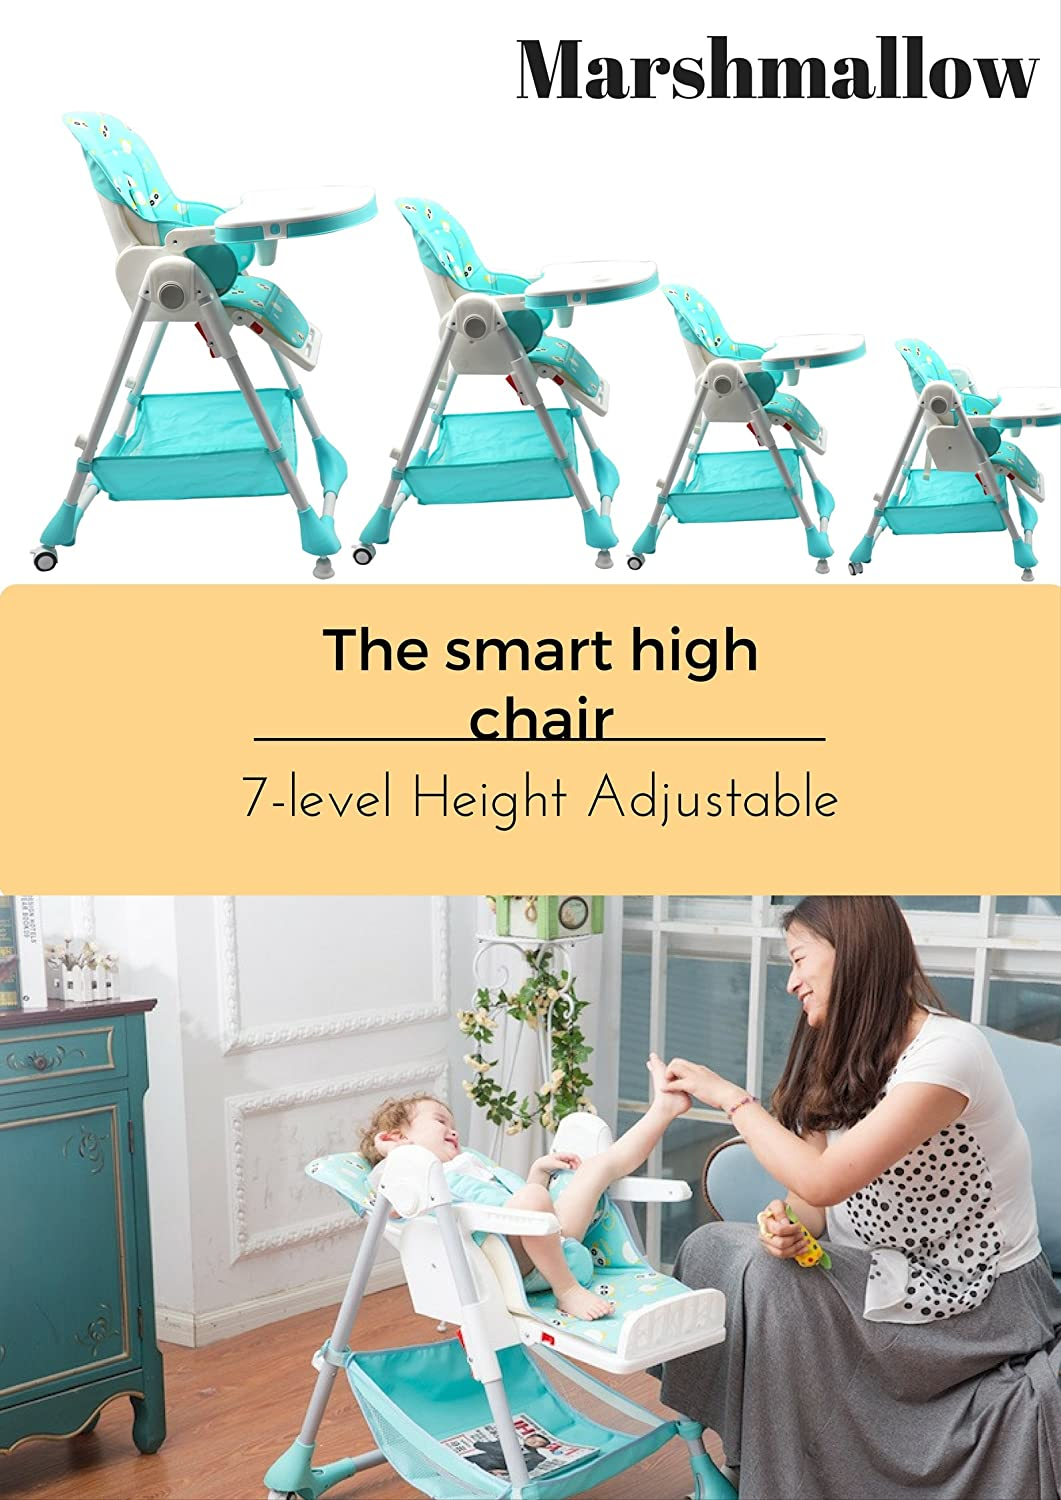 Buy R For Rabbit Marshmallow The Smart High Chair (Green) Online At Low  Prices In India   Amazon.in